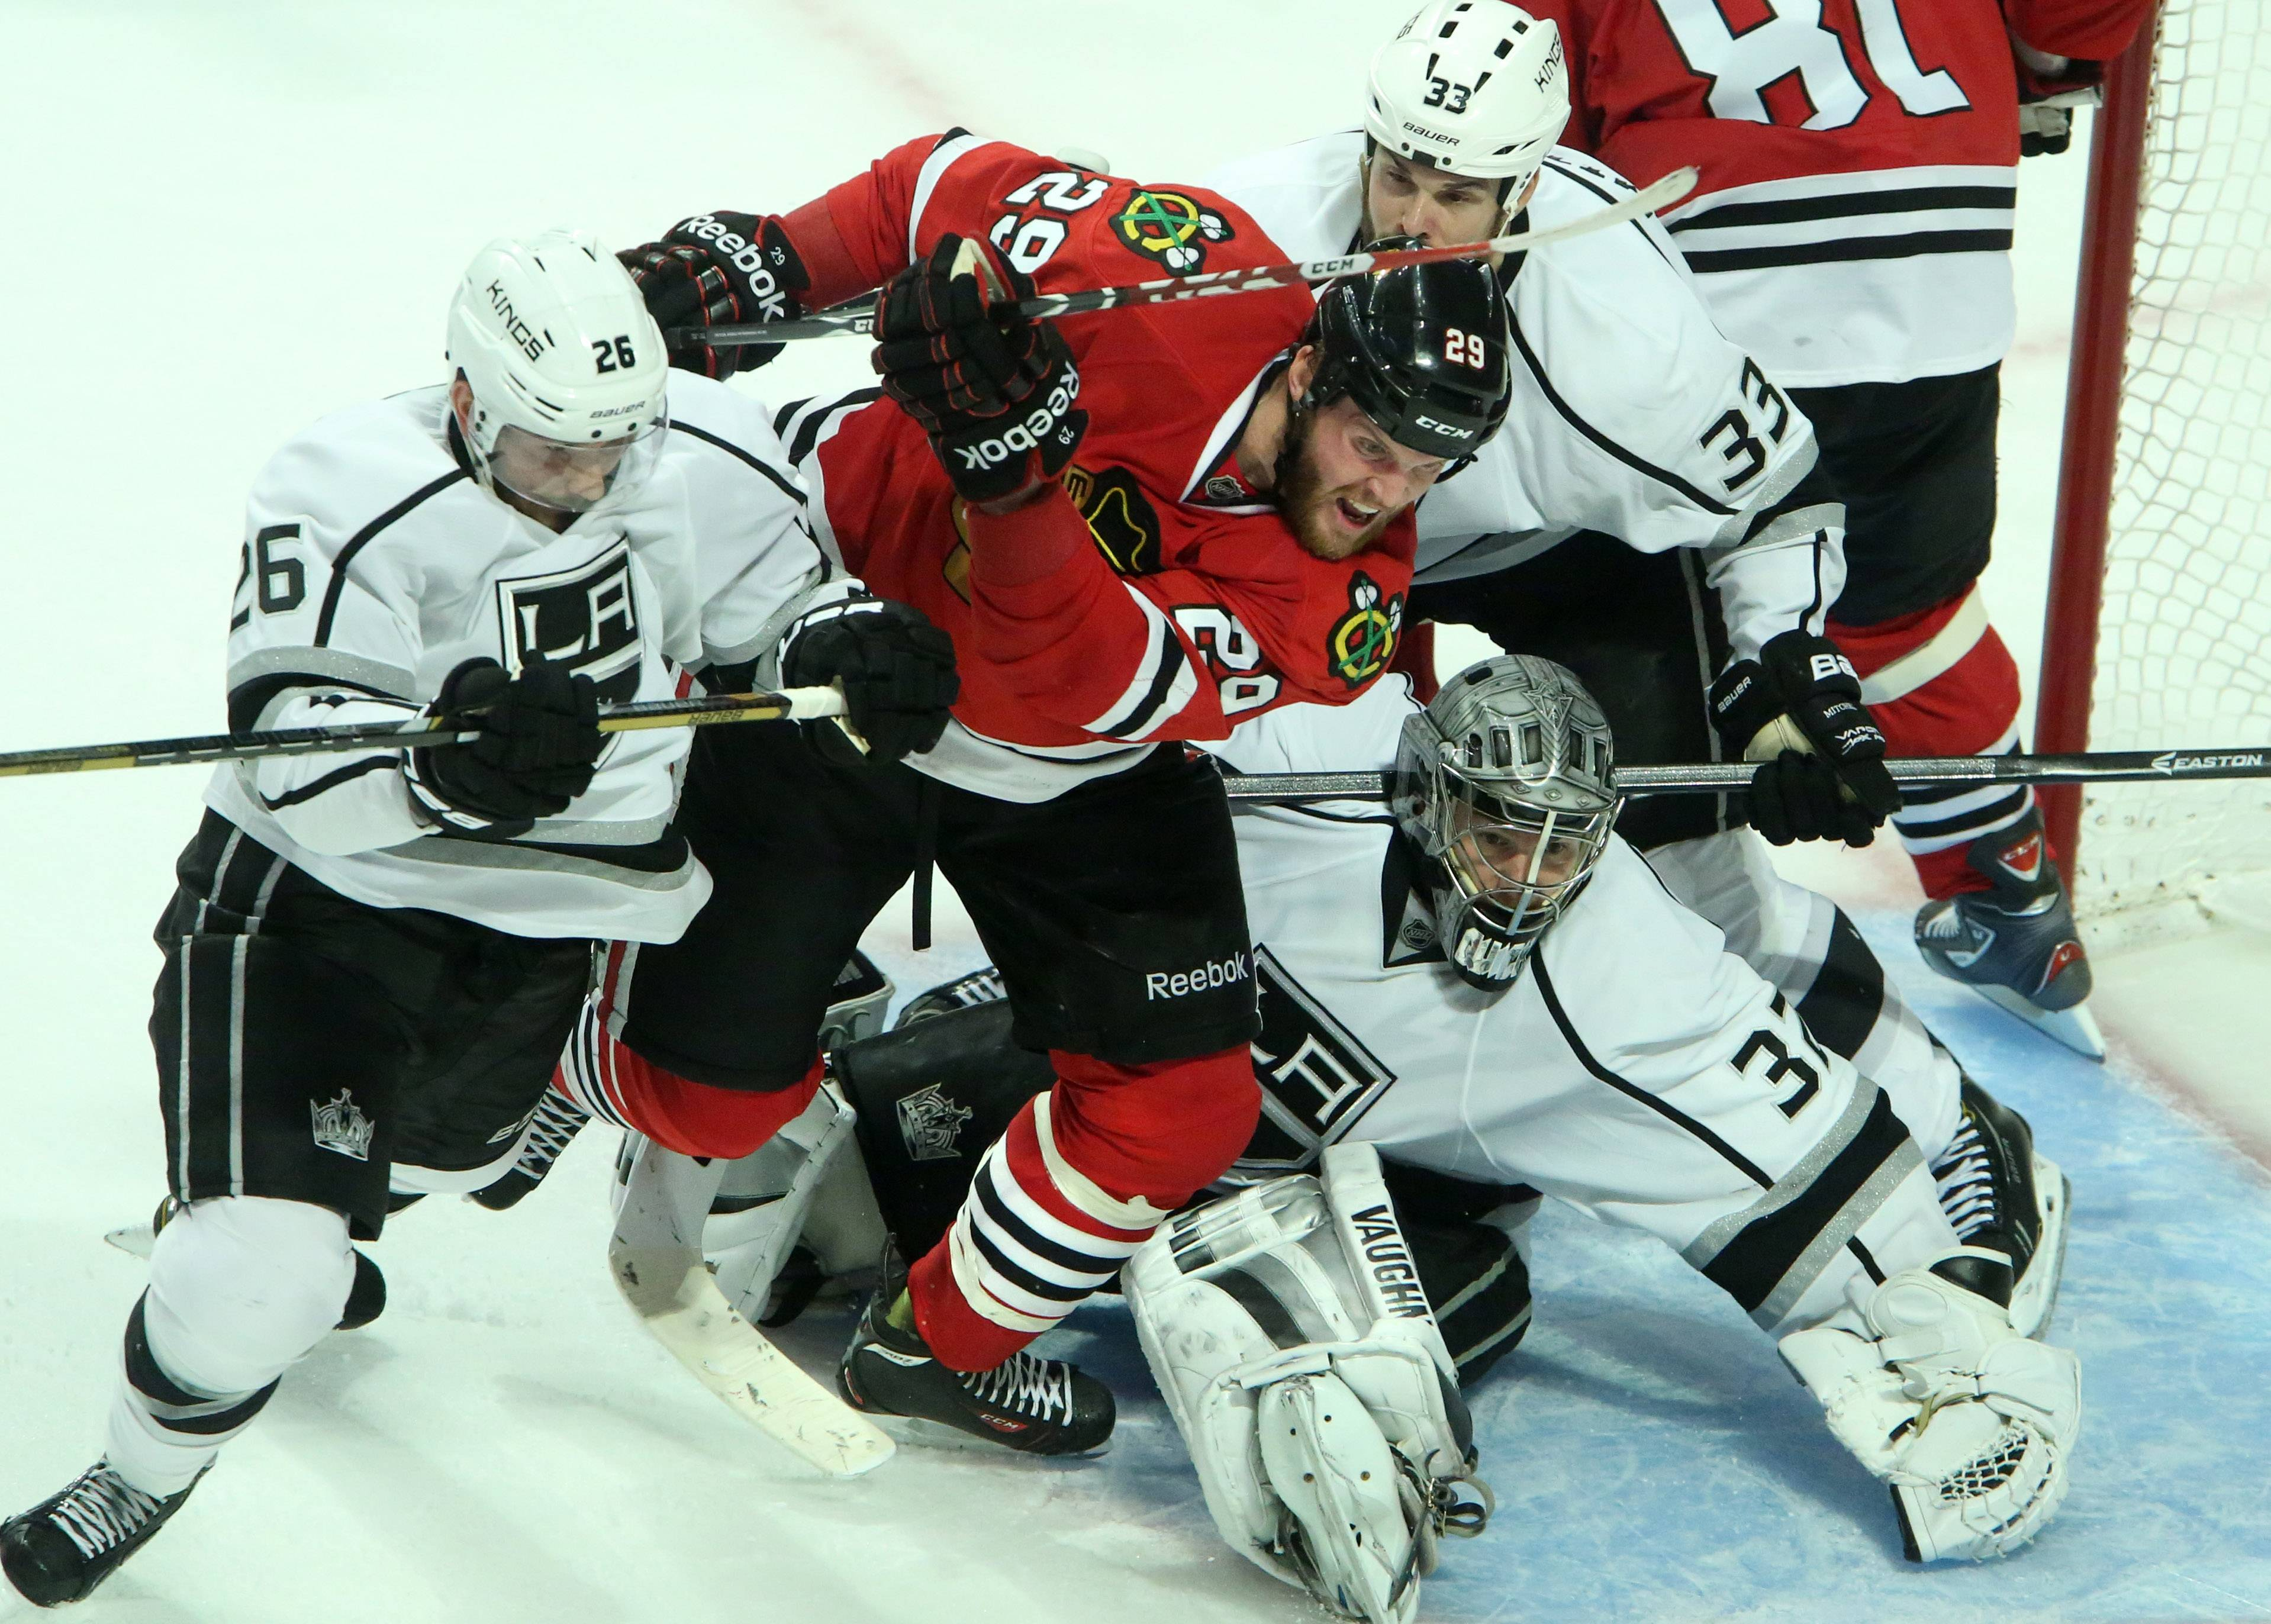 Chicago Blackhawks left wing Bryan Bickell fights for position with Los Angeles Kings defenseman Slava Voynov in front of Los Angeles Kings goalie Jonathan Quick in the third period of Game 7 of the Western Conference finals.